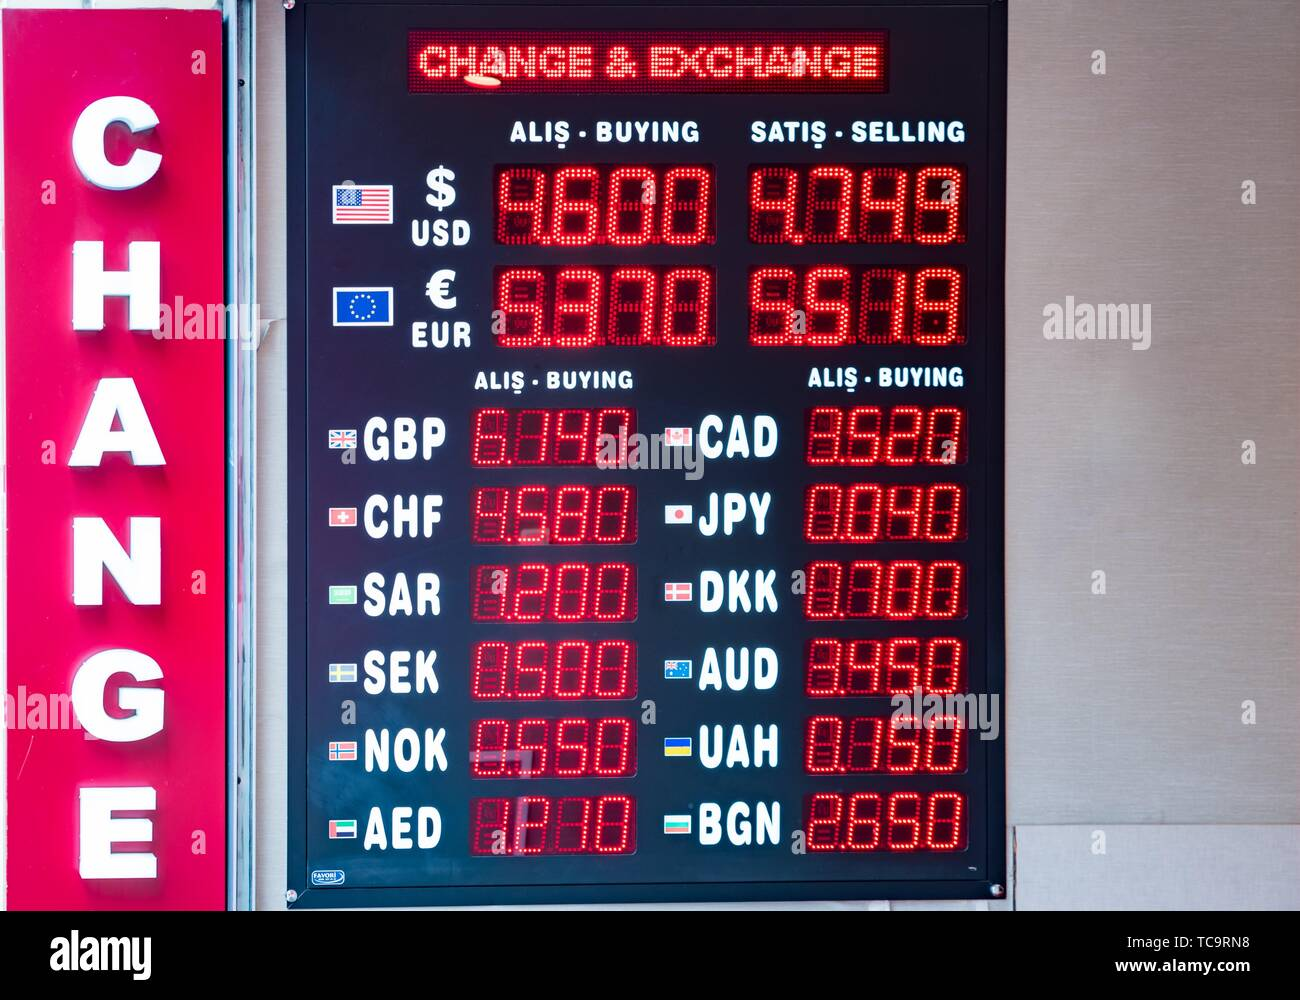 Turkish lira foreign exchange rates displays on a digital LED display board in Istanbul, Turkey,. - Stock Image